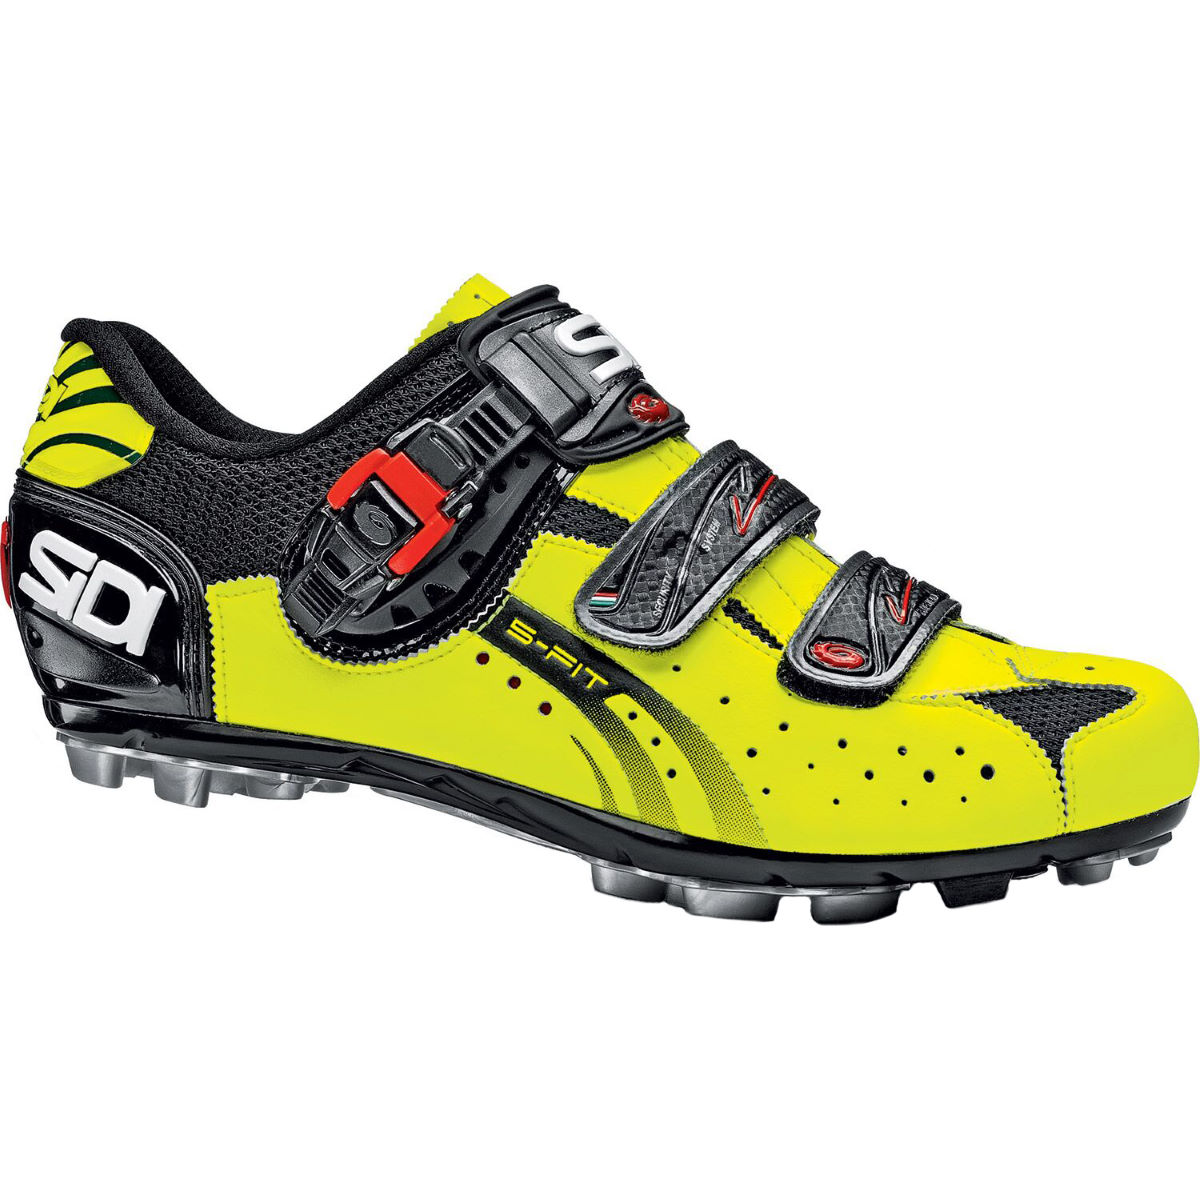 Chaussures VTT Sidi Eagle 5-Fit - 37 Black/Yellow Fluo